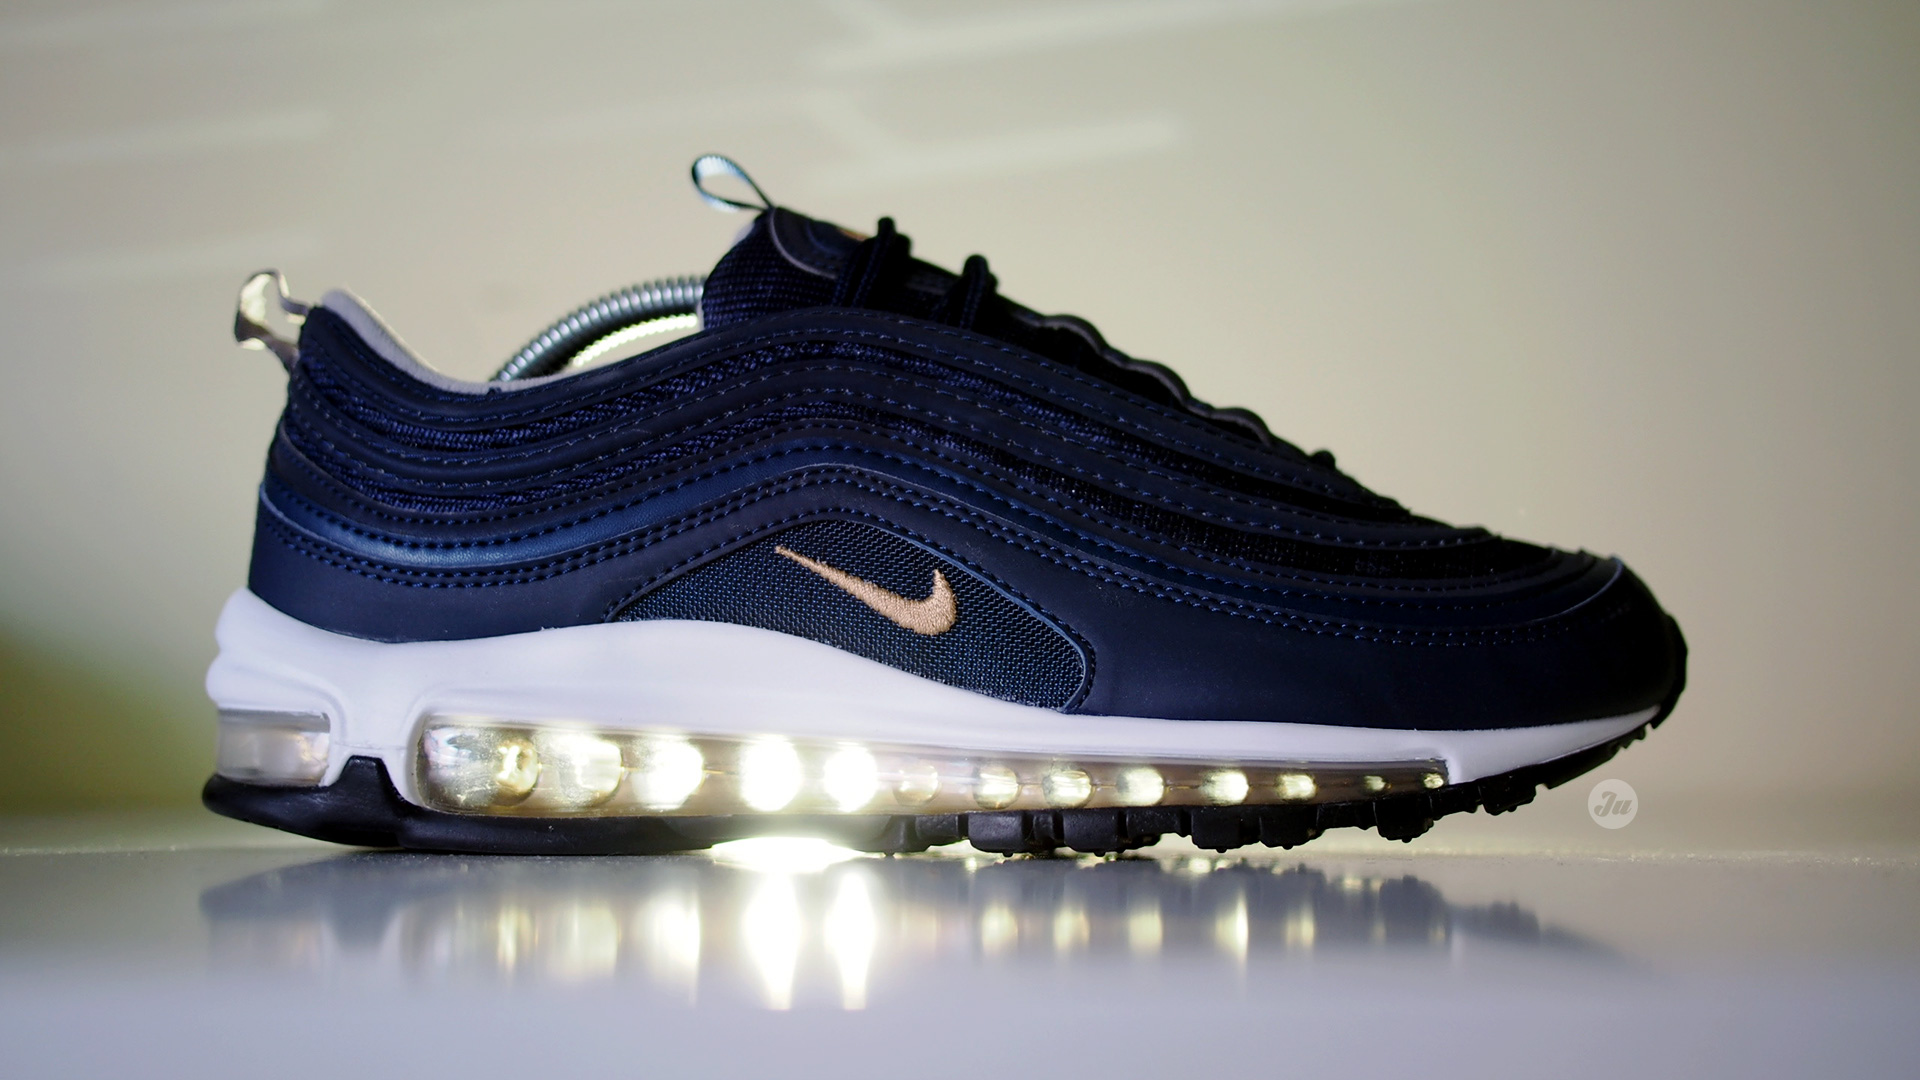 a9dcdf7543 There's no shortage of the Air Max 97 this year! A look at the Midnight